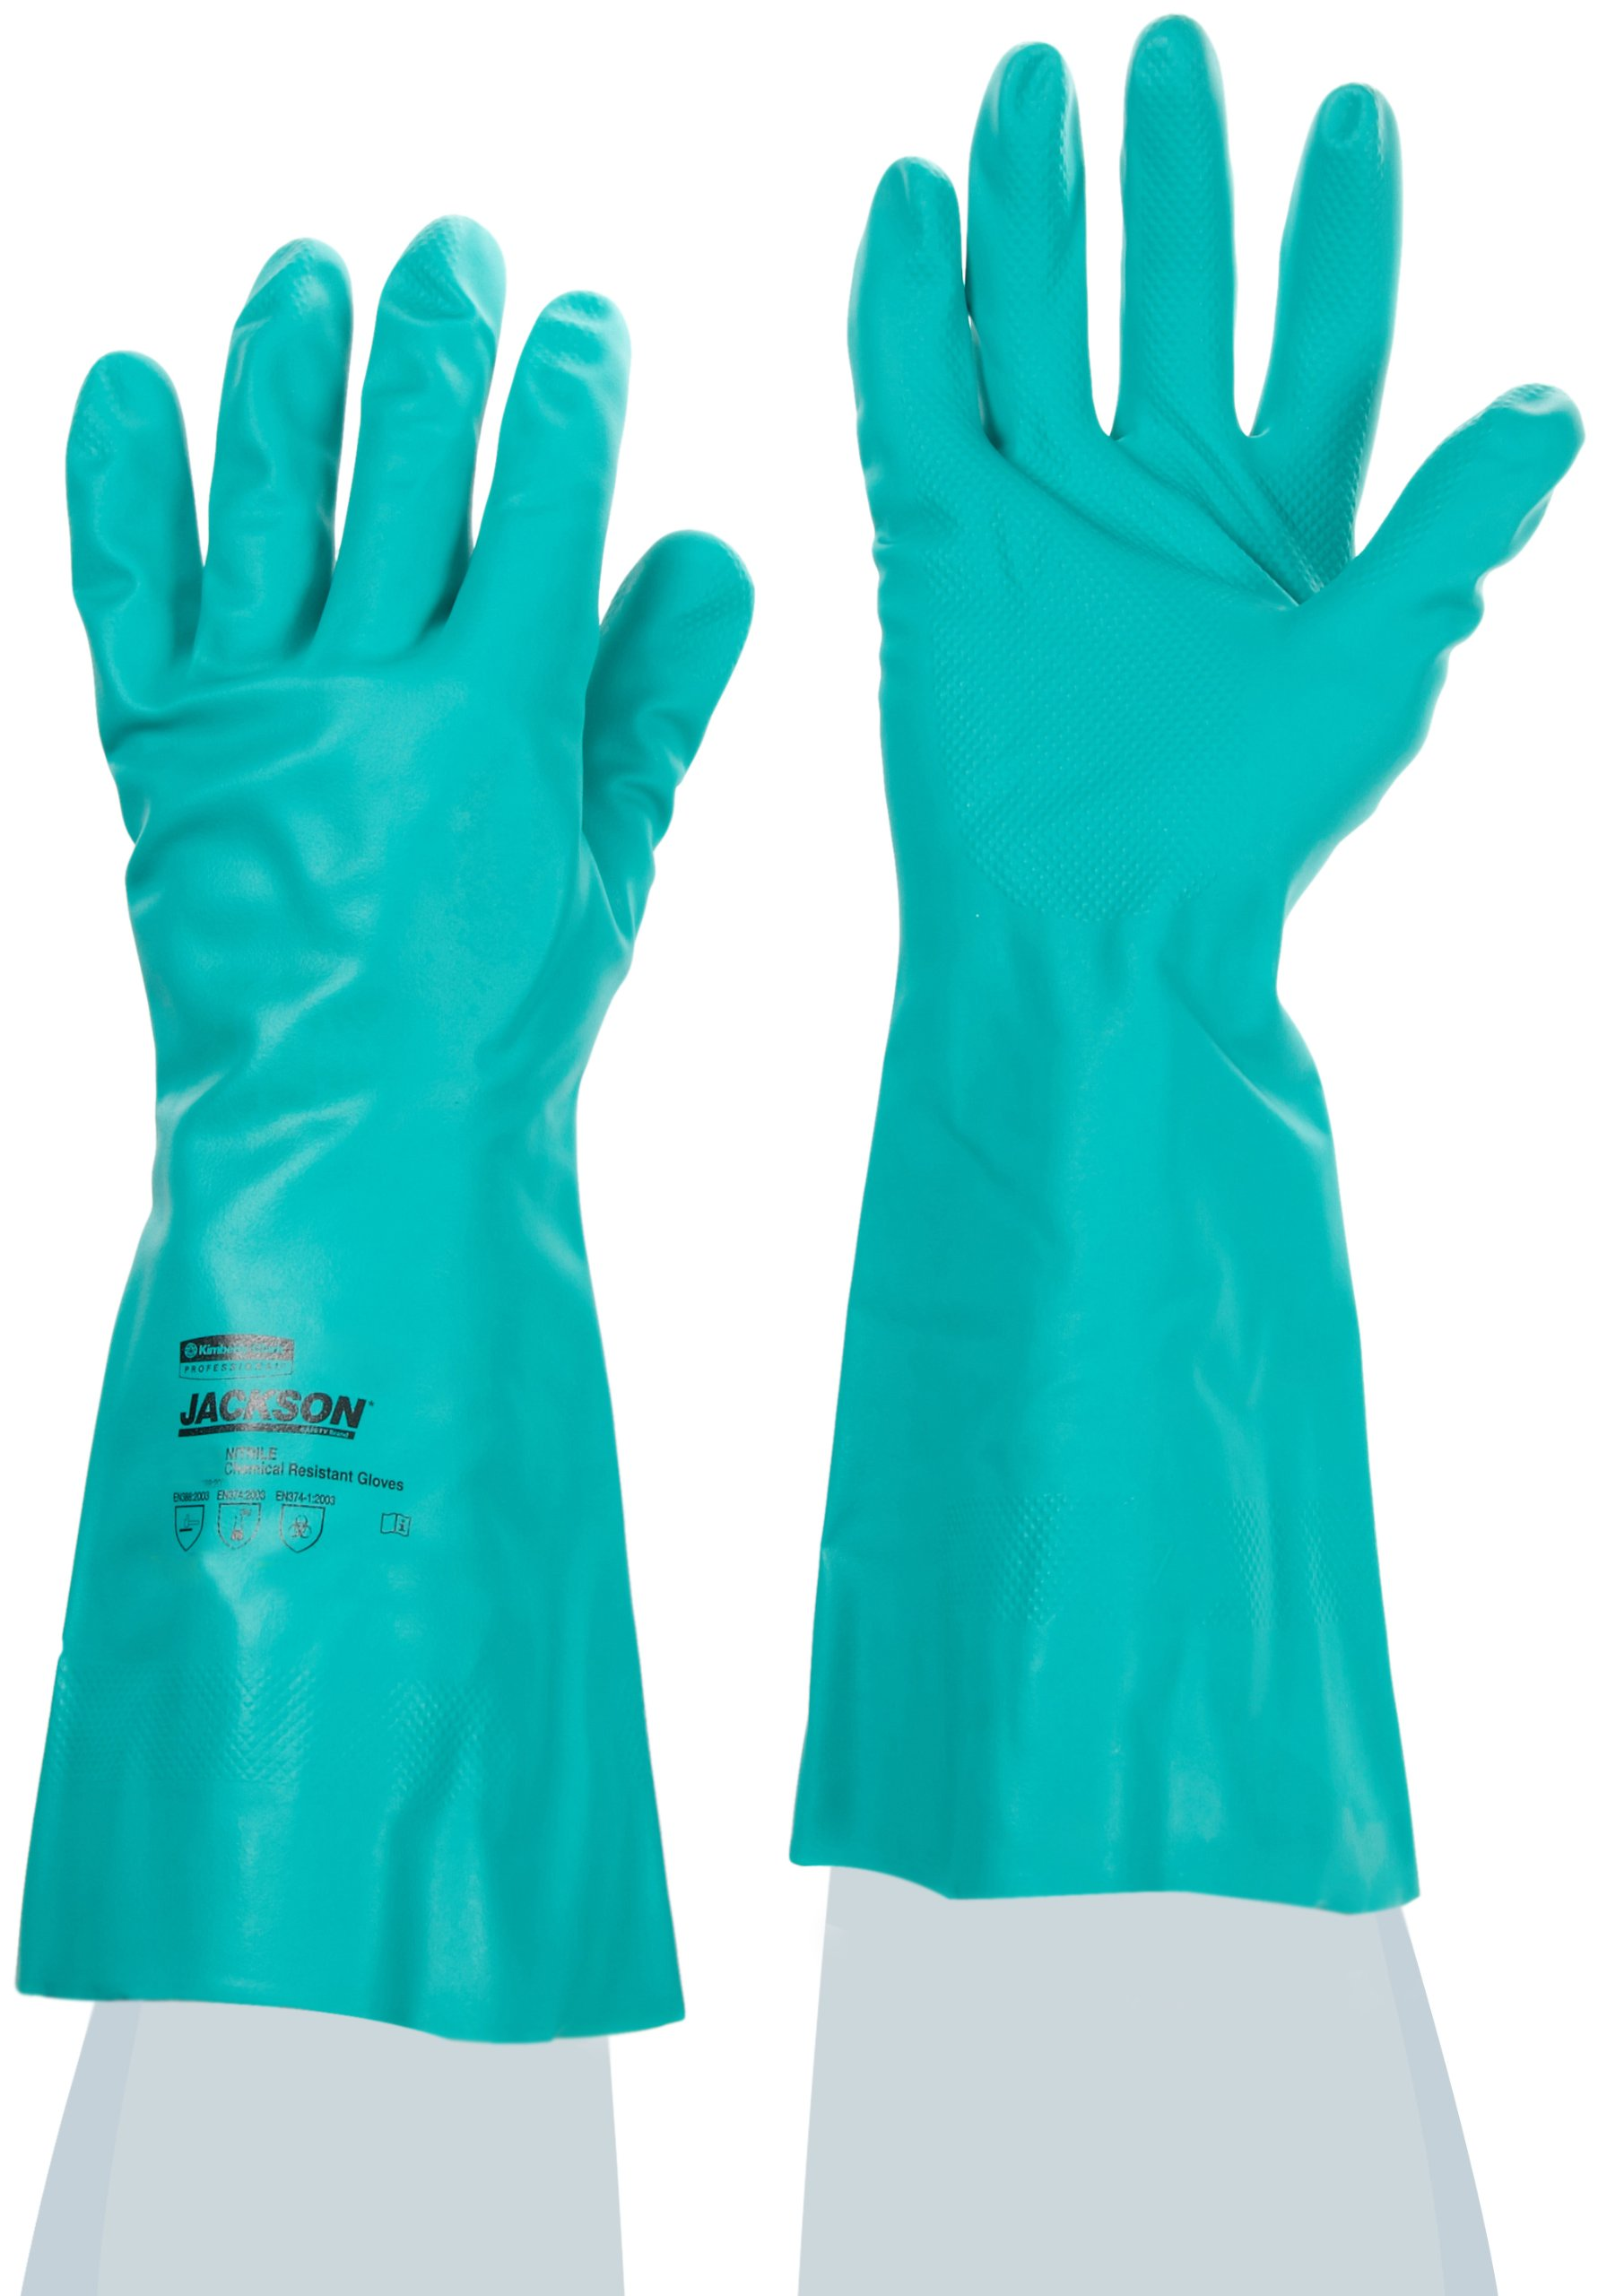 Jackson Safety G80 Nitrile Glove, Chemical Resistant, 15 mil Thickness, 13'' Length, Small, Green (Case of 60 Pairs)